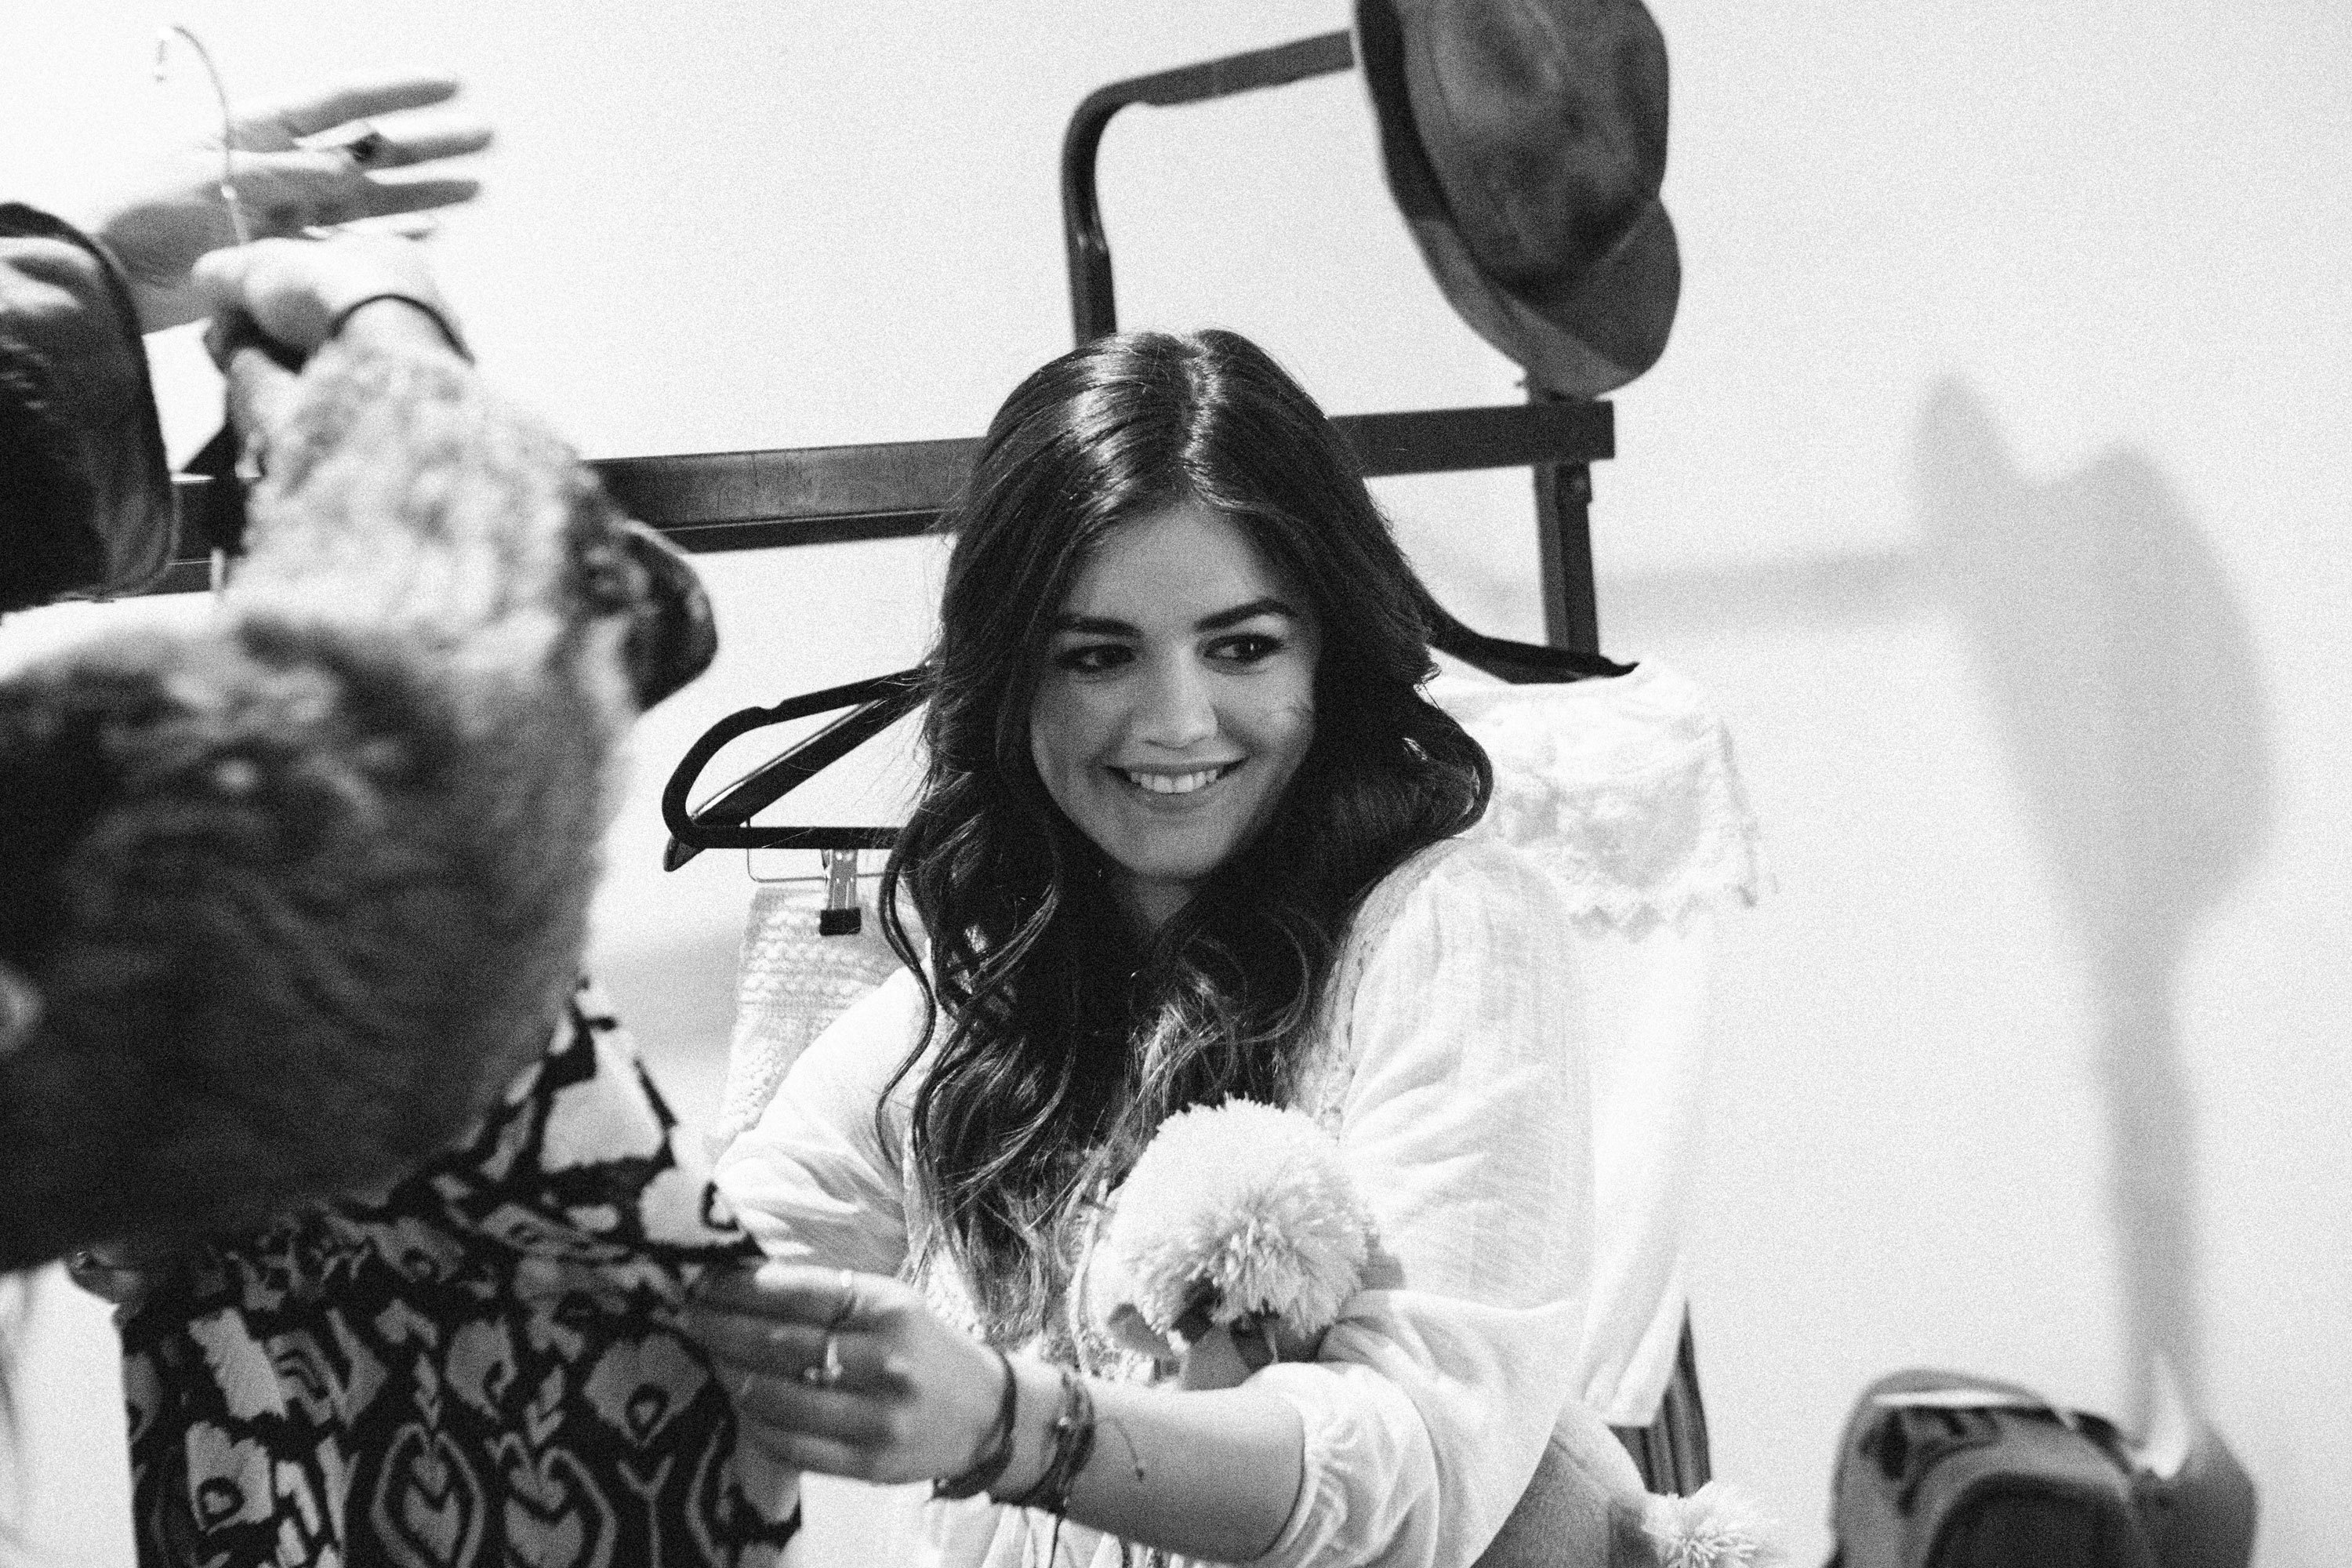 """Behind-the-scenes at Lucy Hale's American Rag """"ALL ACCESS"""" campaign. (Photo: Business Wire)"""